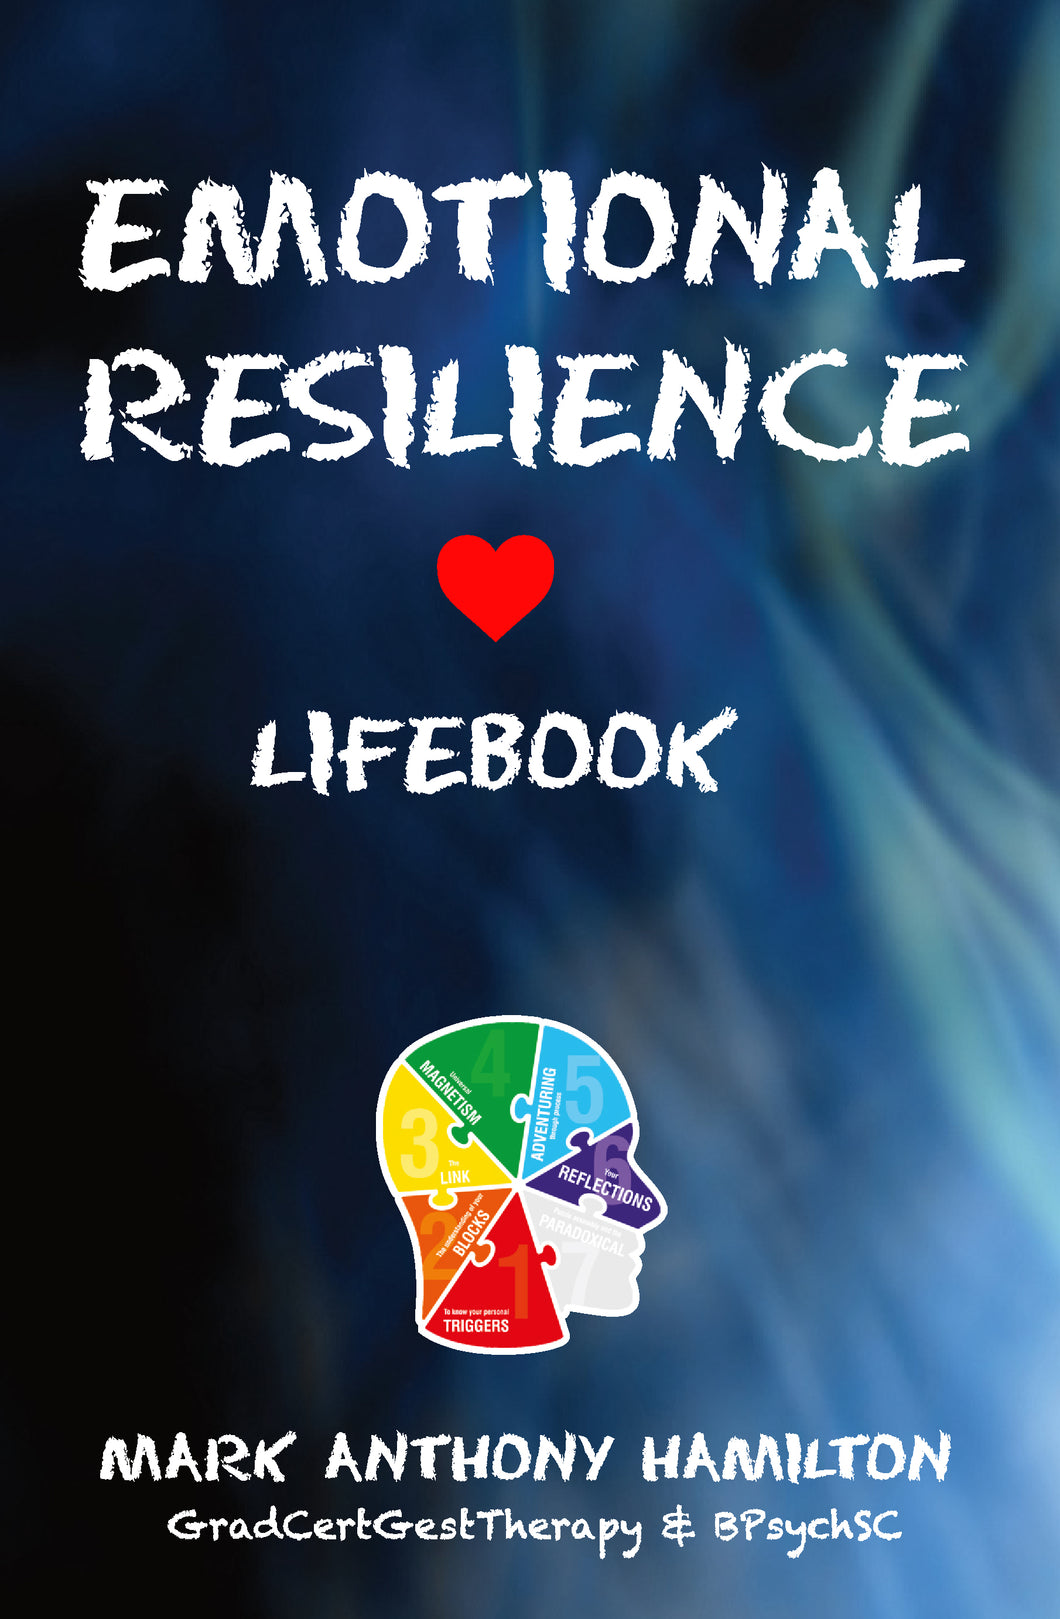 Emotional Resilience - LIFEBOOK